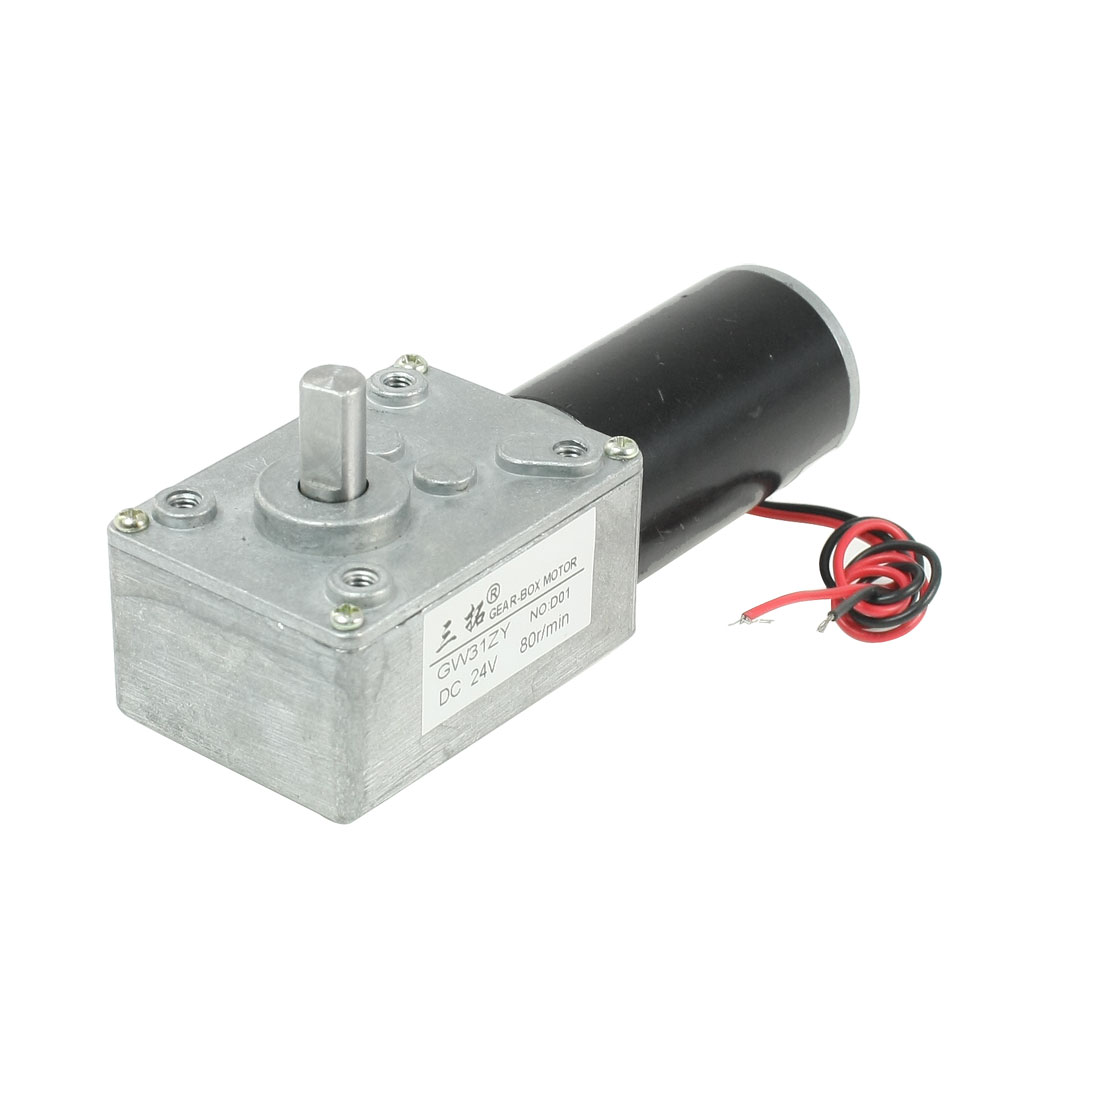 DC 24V 80RPM 8mmx13mm Shaft 32mm Diameter Electric Power Geared Motor